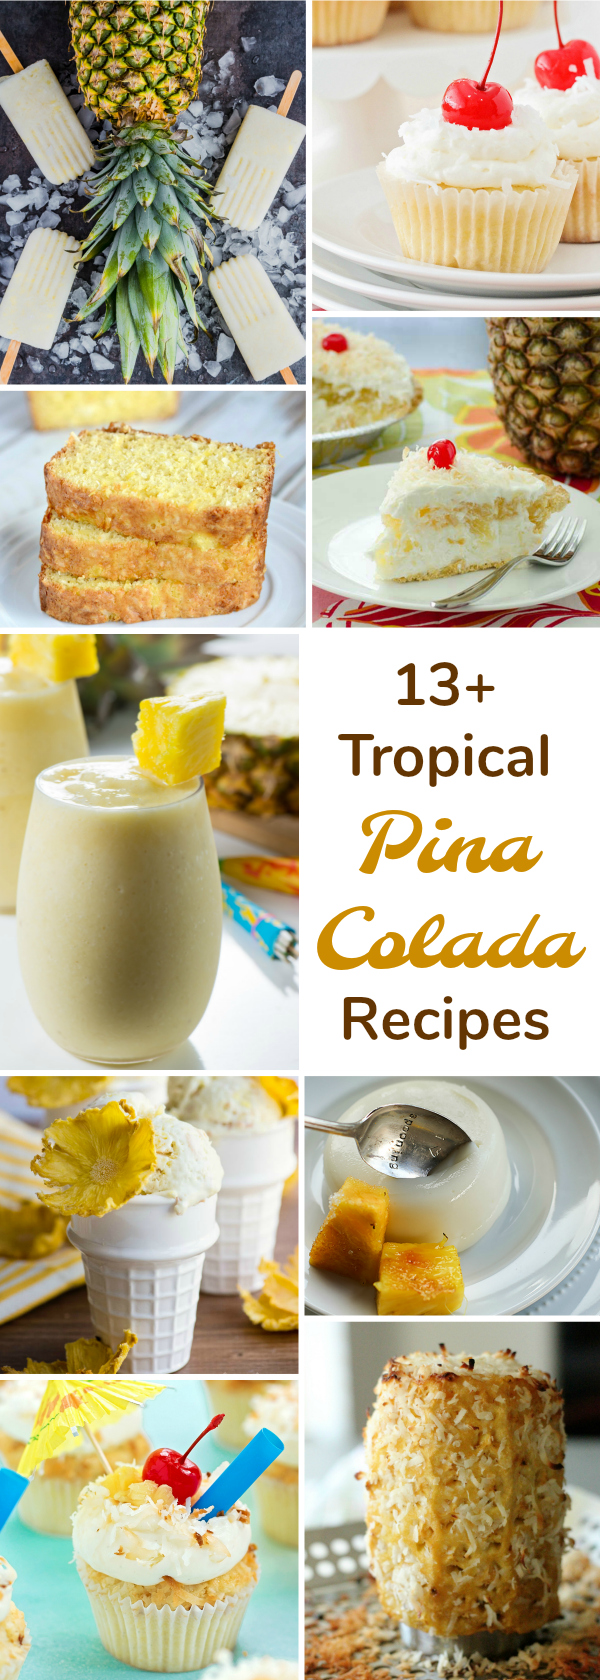 13 + Pina Colada Recipes | realmomkitchen.com #celebratingfoodholidays